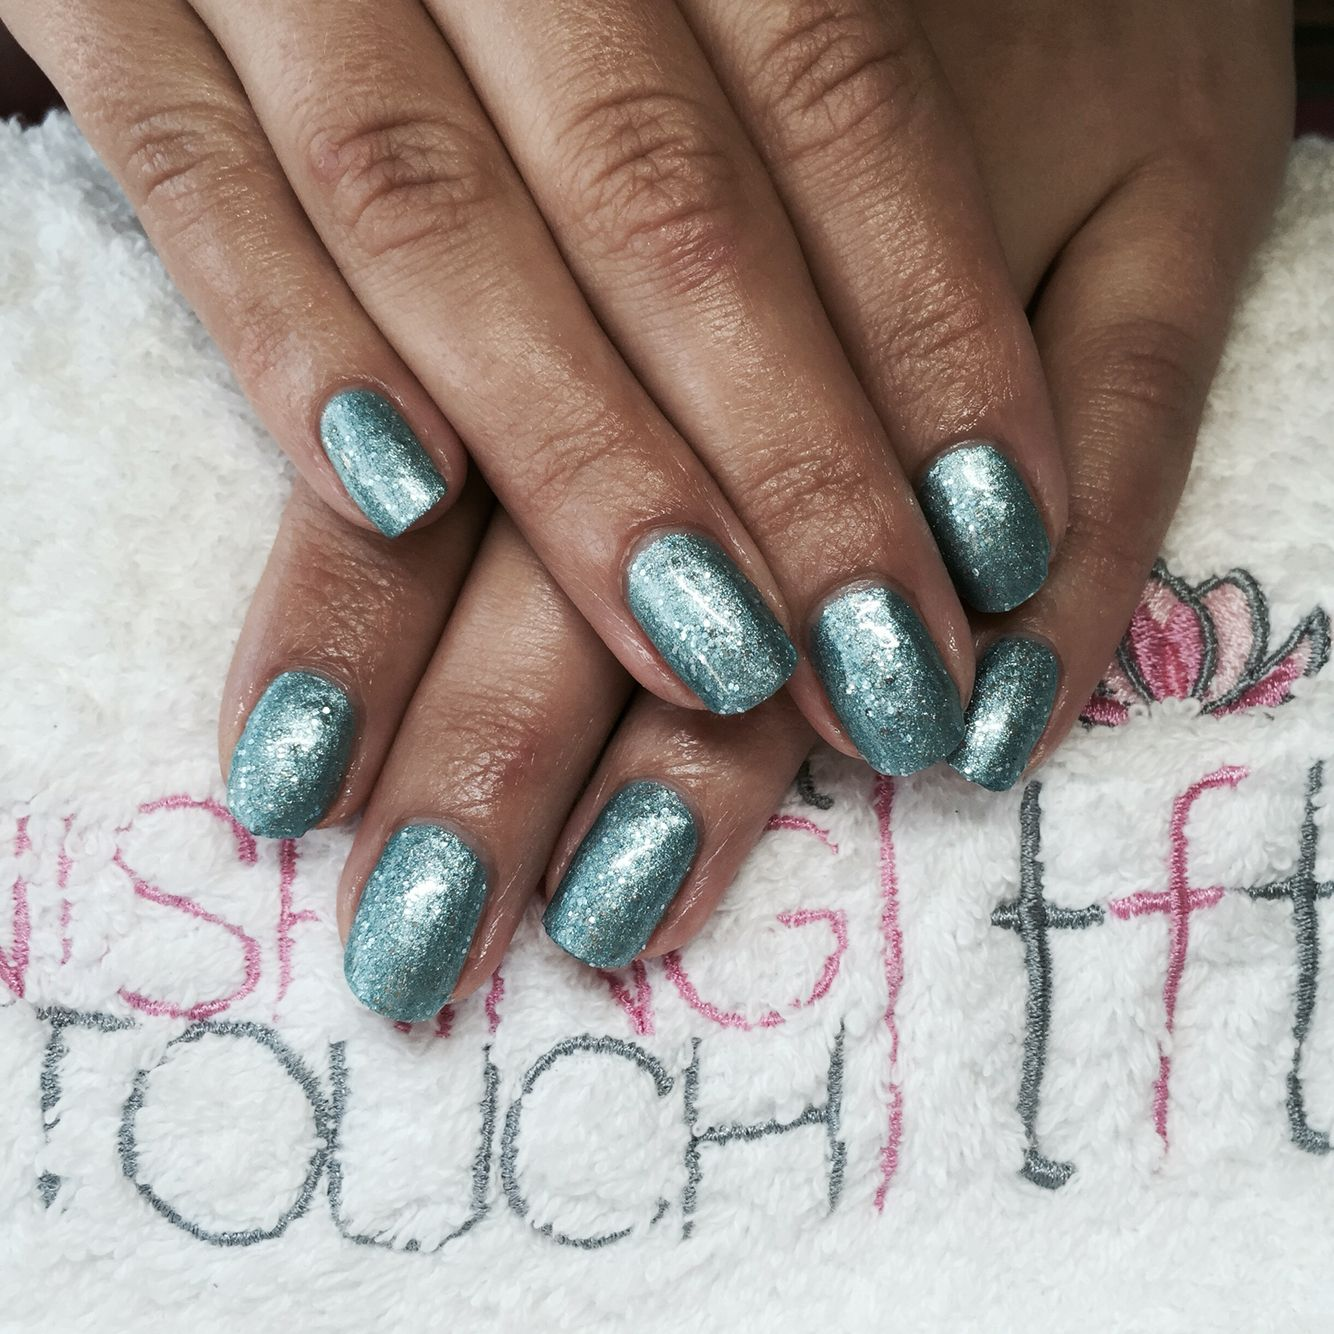 Christmas Nails Shellac: A Beautiful Ice Blue For The